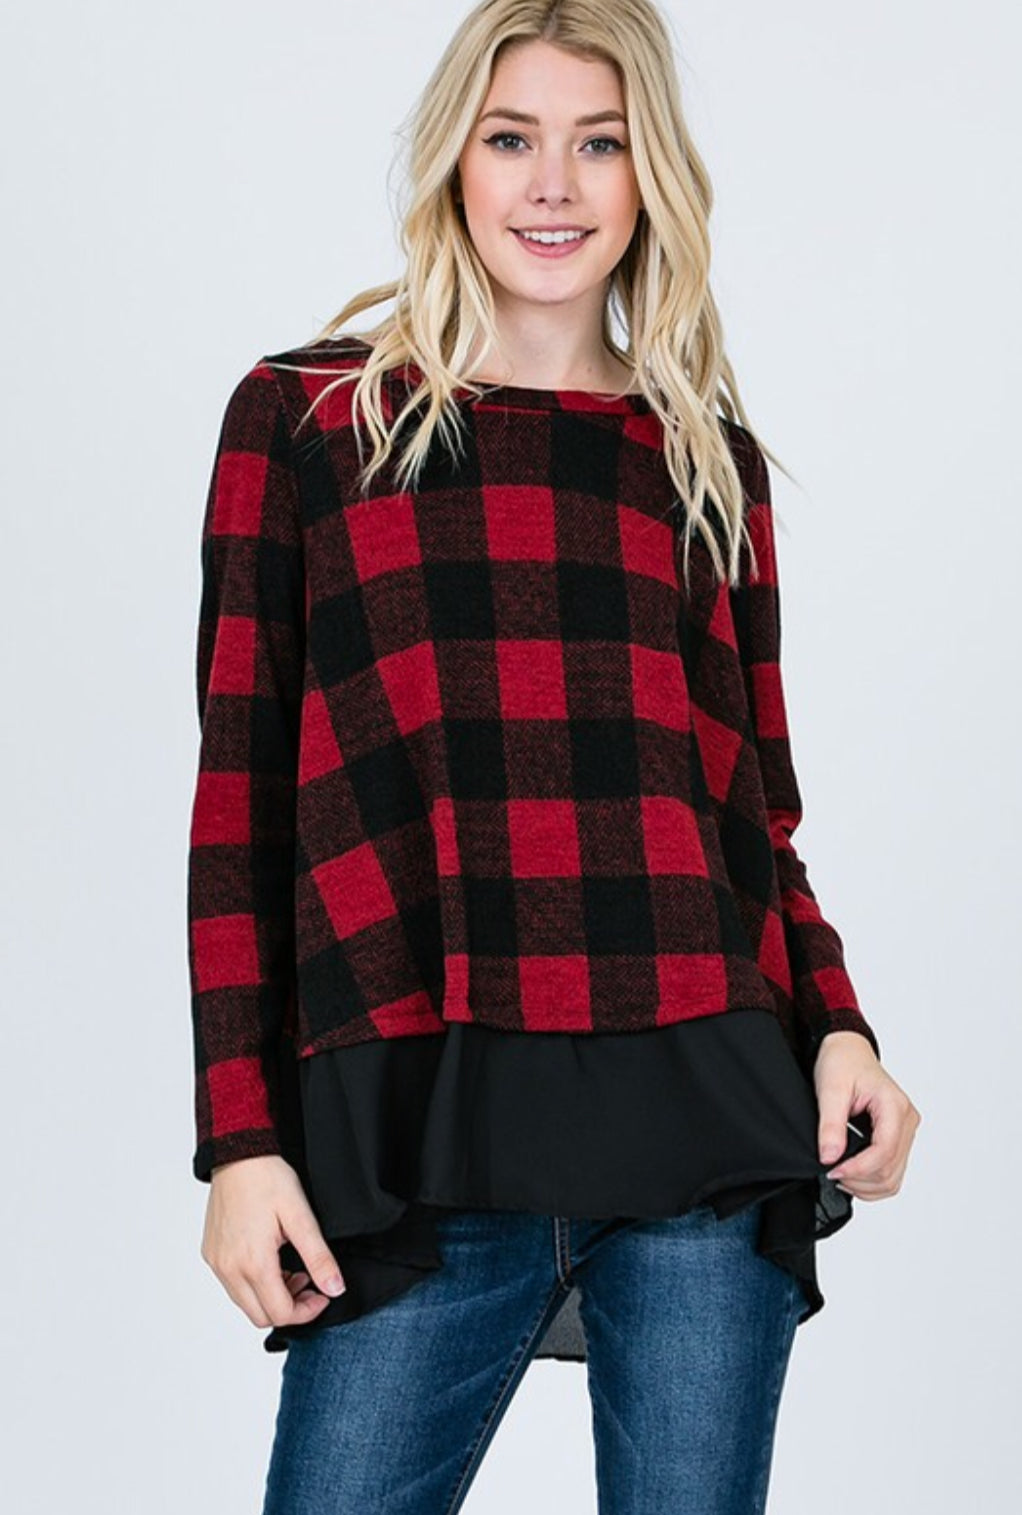 Long Sleeve Checkered Top with Ruffle Detail